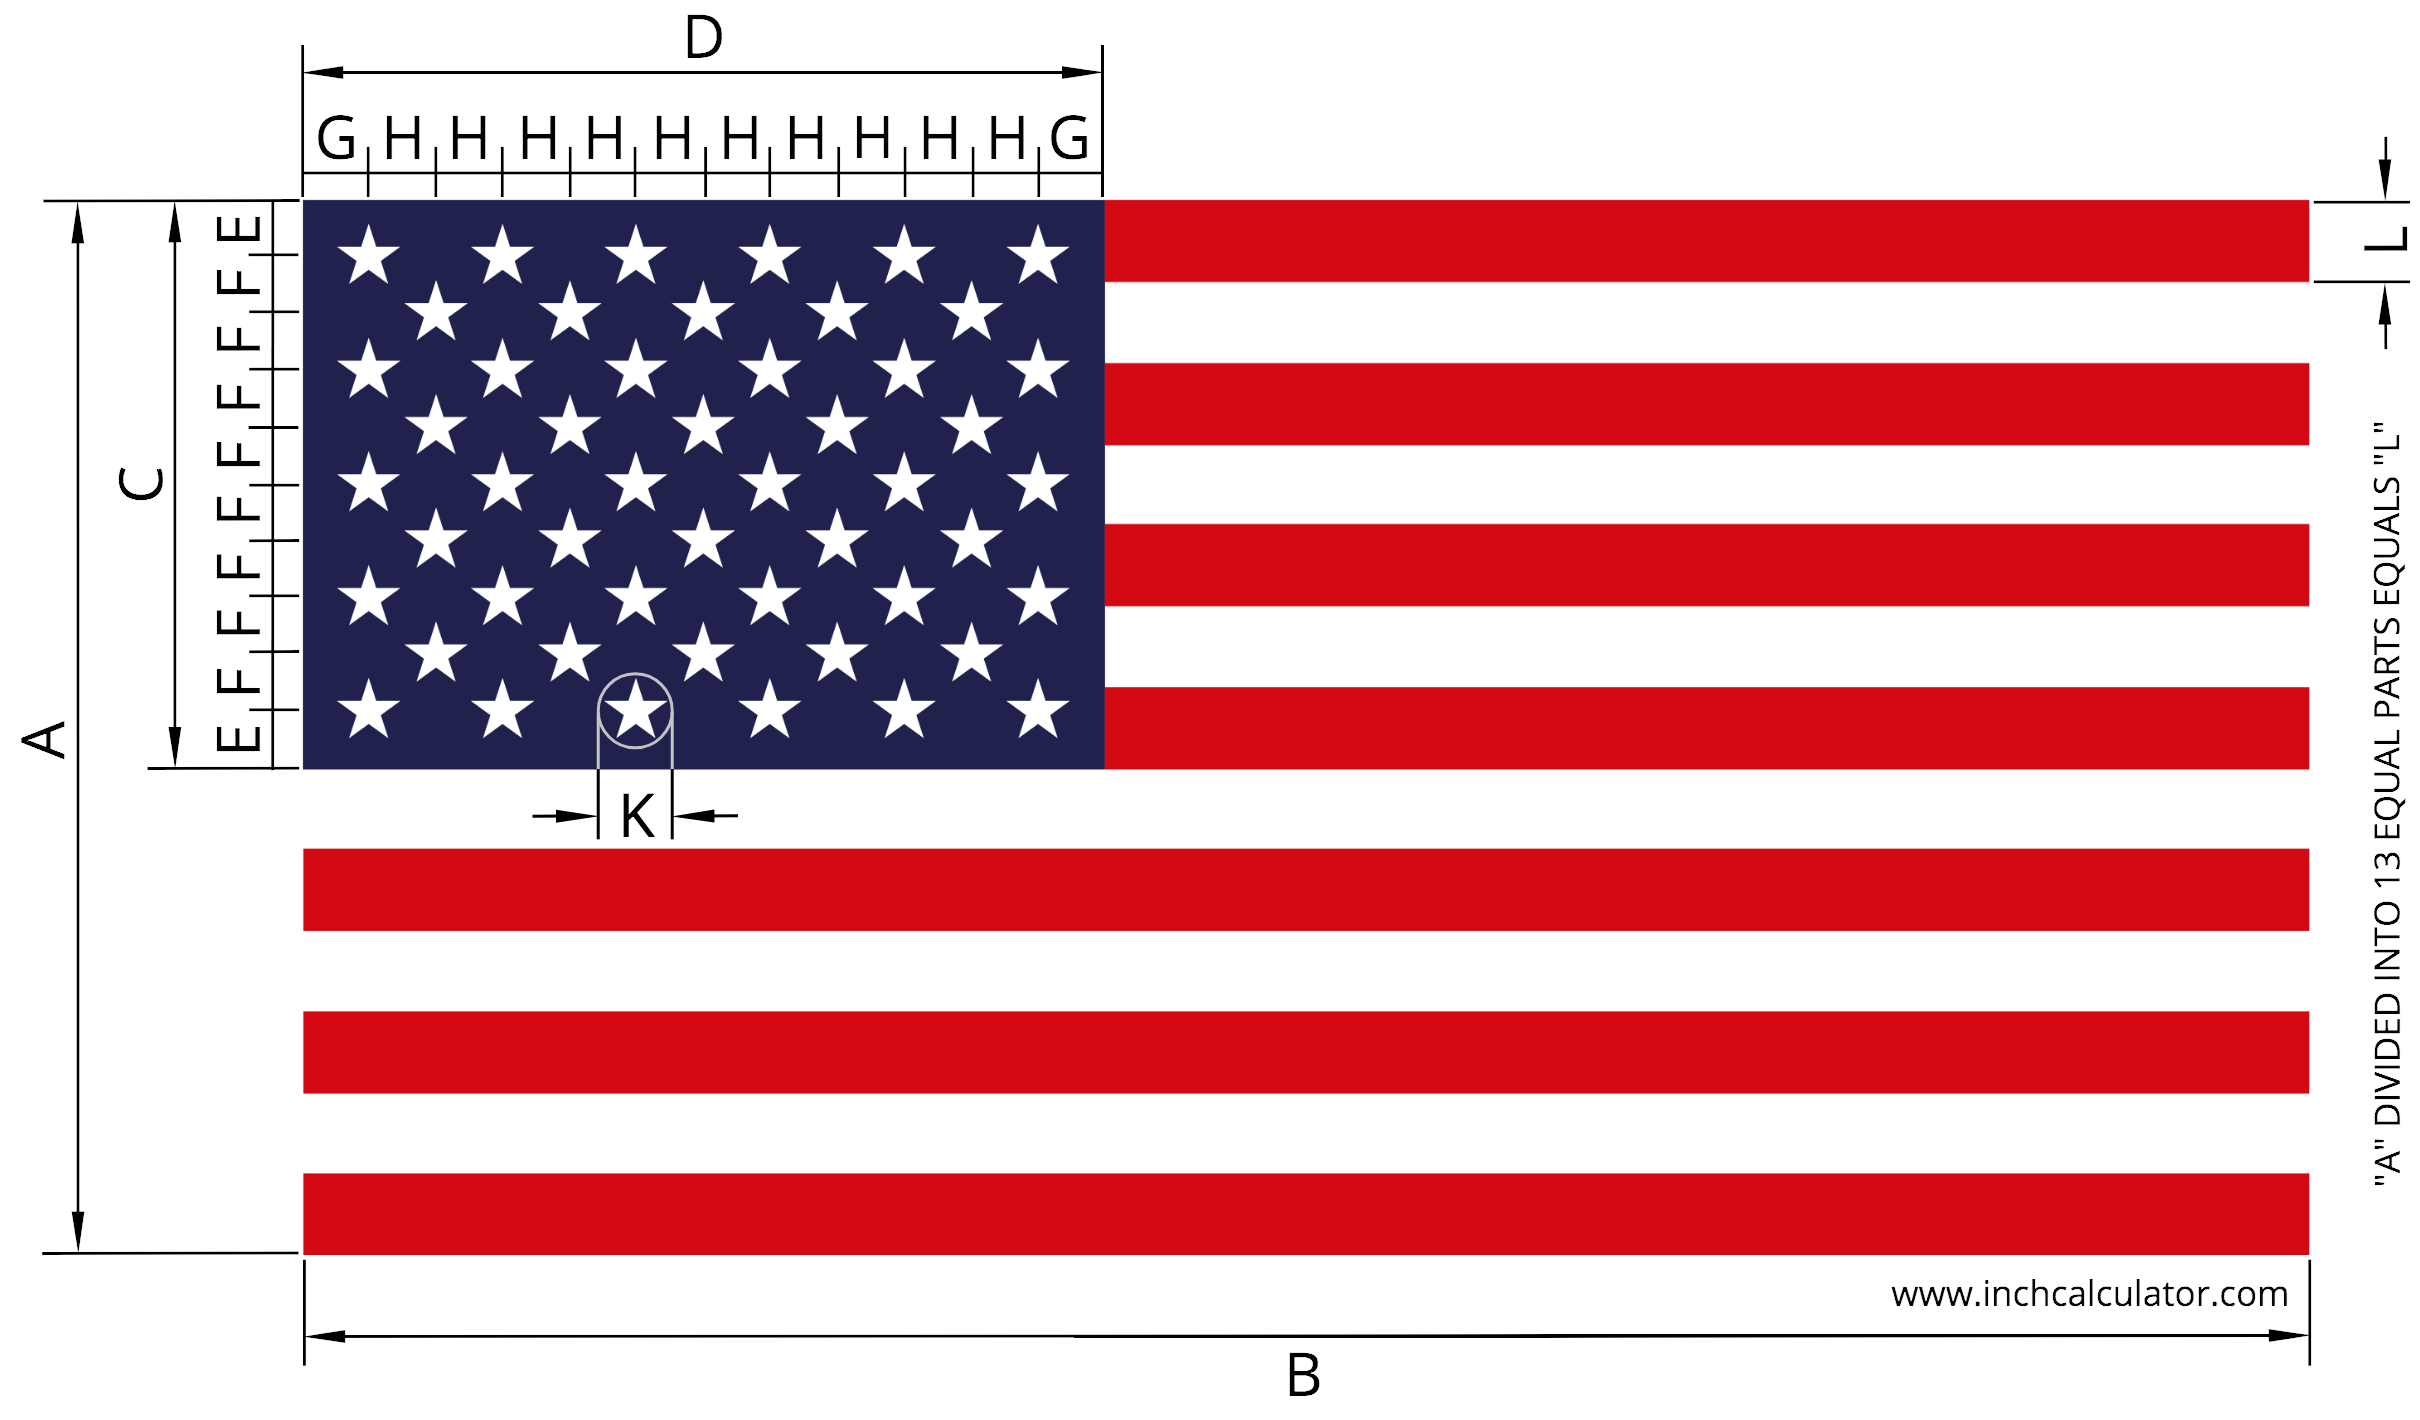 image relating to Printable American Flag Star Stencil called American Flag Measurement Dimensions Calculator - Inch Calculator